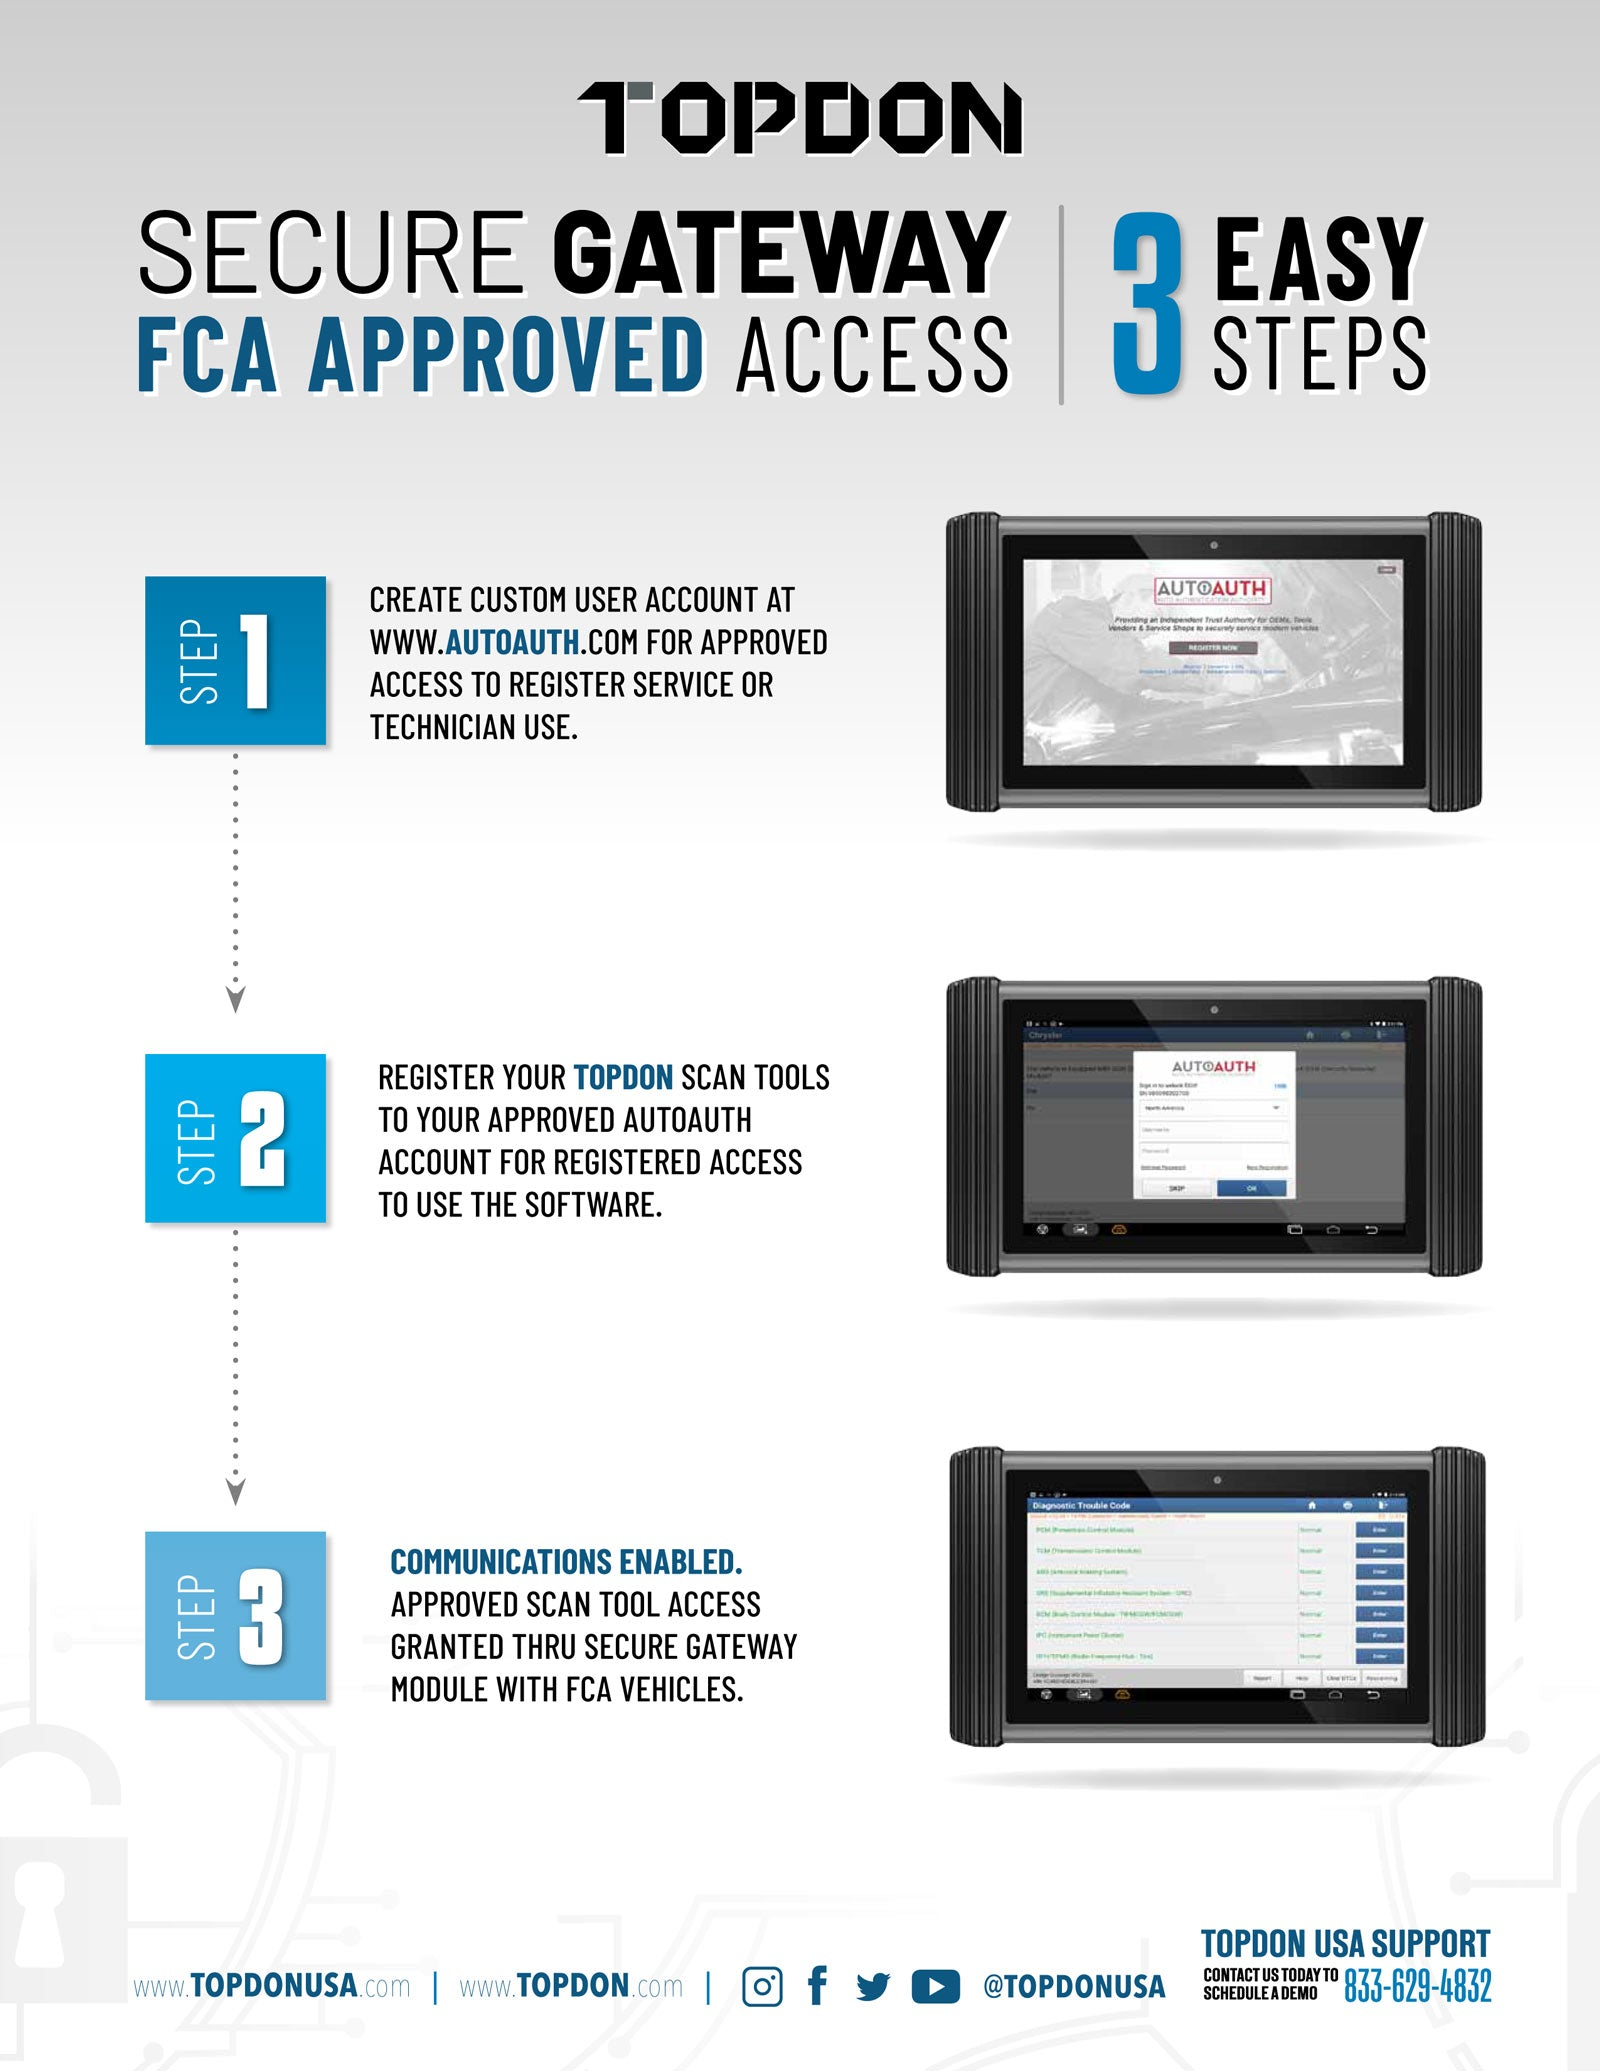 Top Done Secure Gateway FCA Approved Access